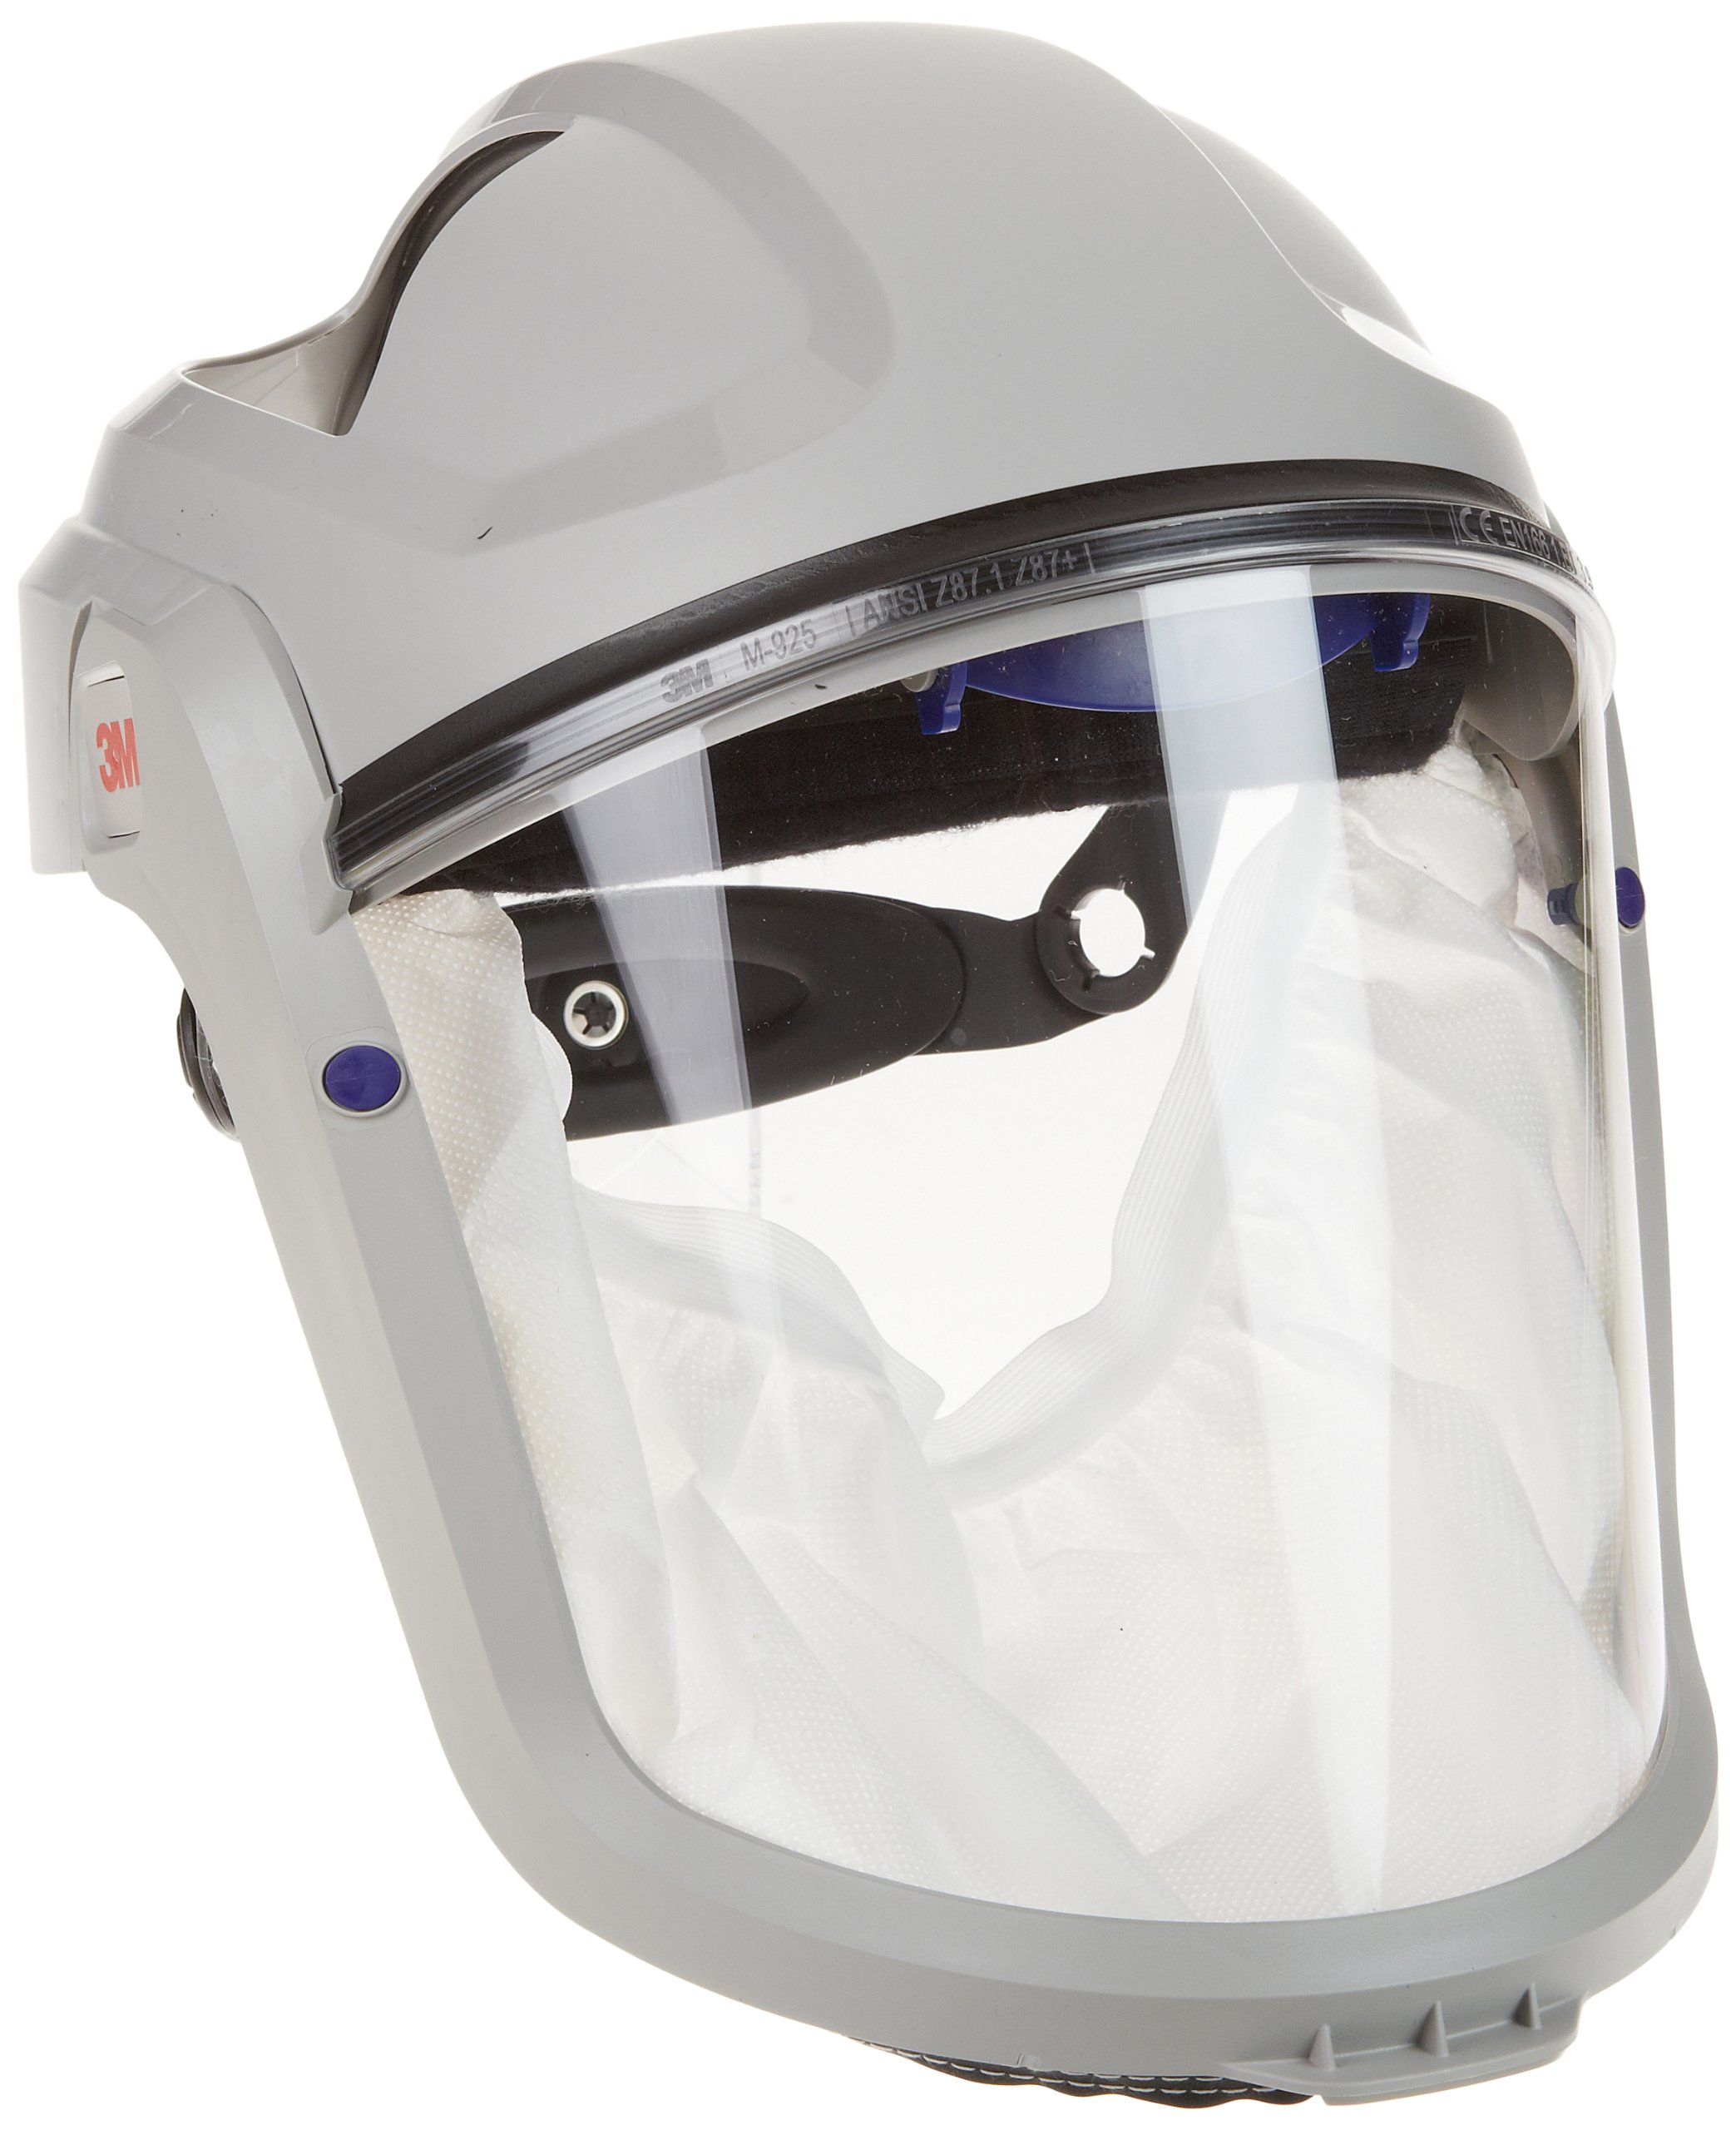 3M M-100 Series Versaflo Respiratory Faceshield Assembly M-105/37314(AAD), with Standard Visor and Faceseal